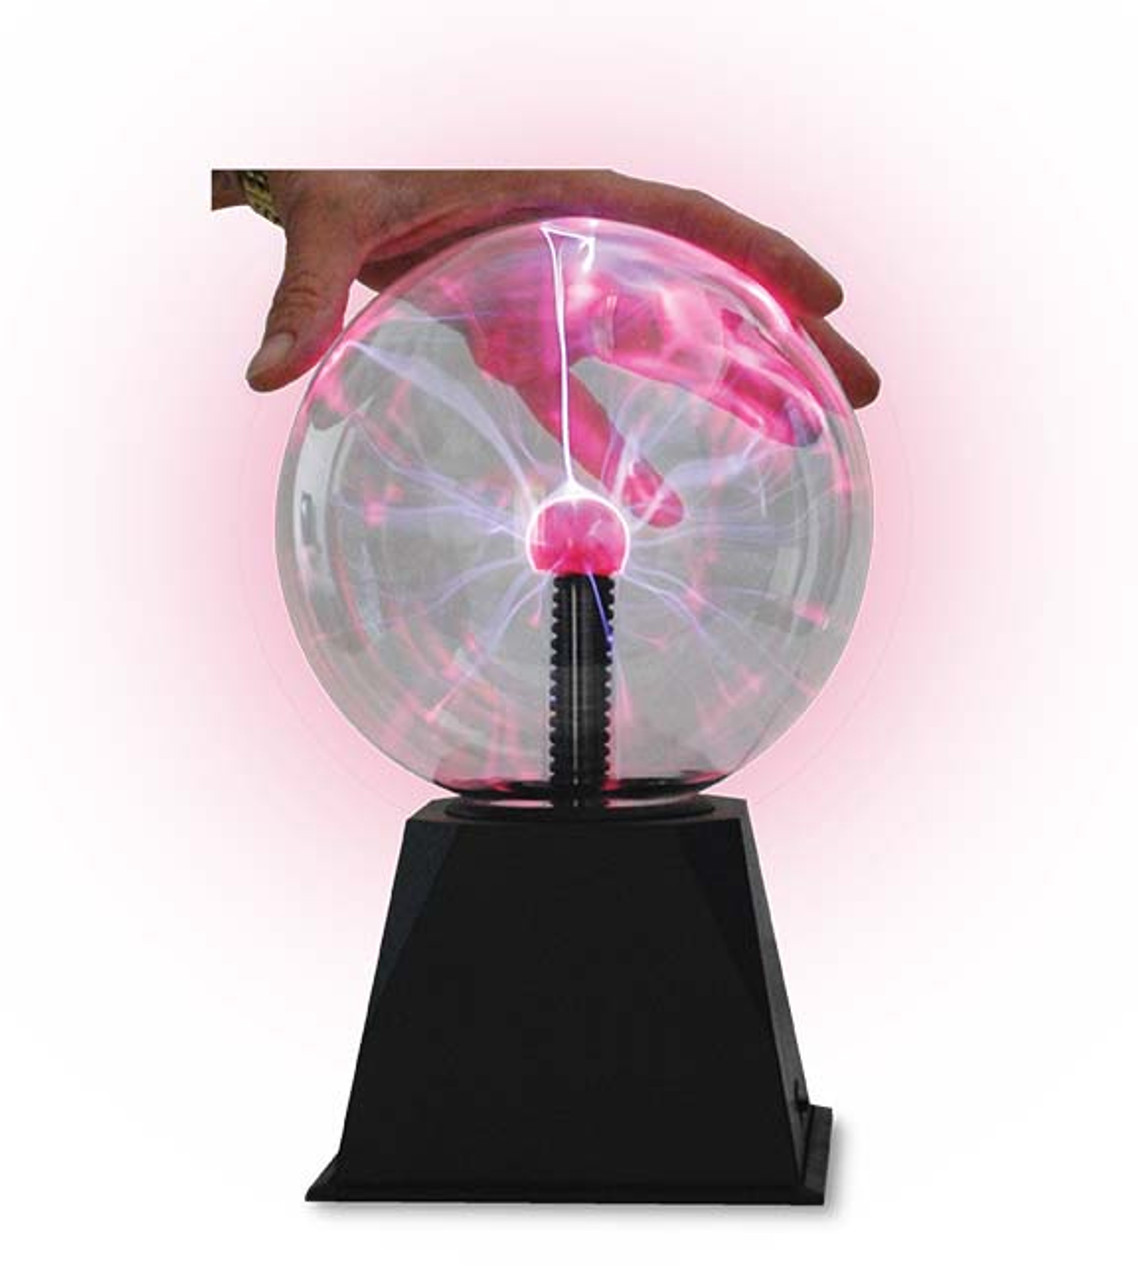 Large plasma bulbs such as this product may be used for many experiments and observations related to high frequency electromagnetic forces.